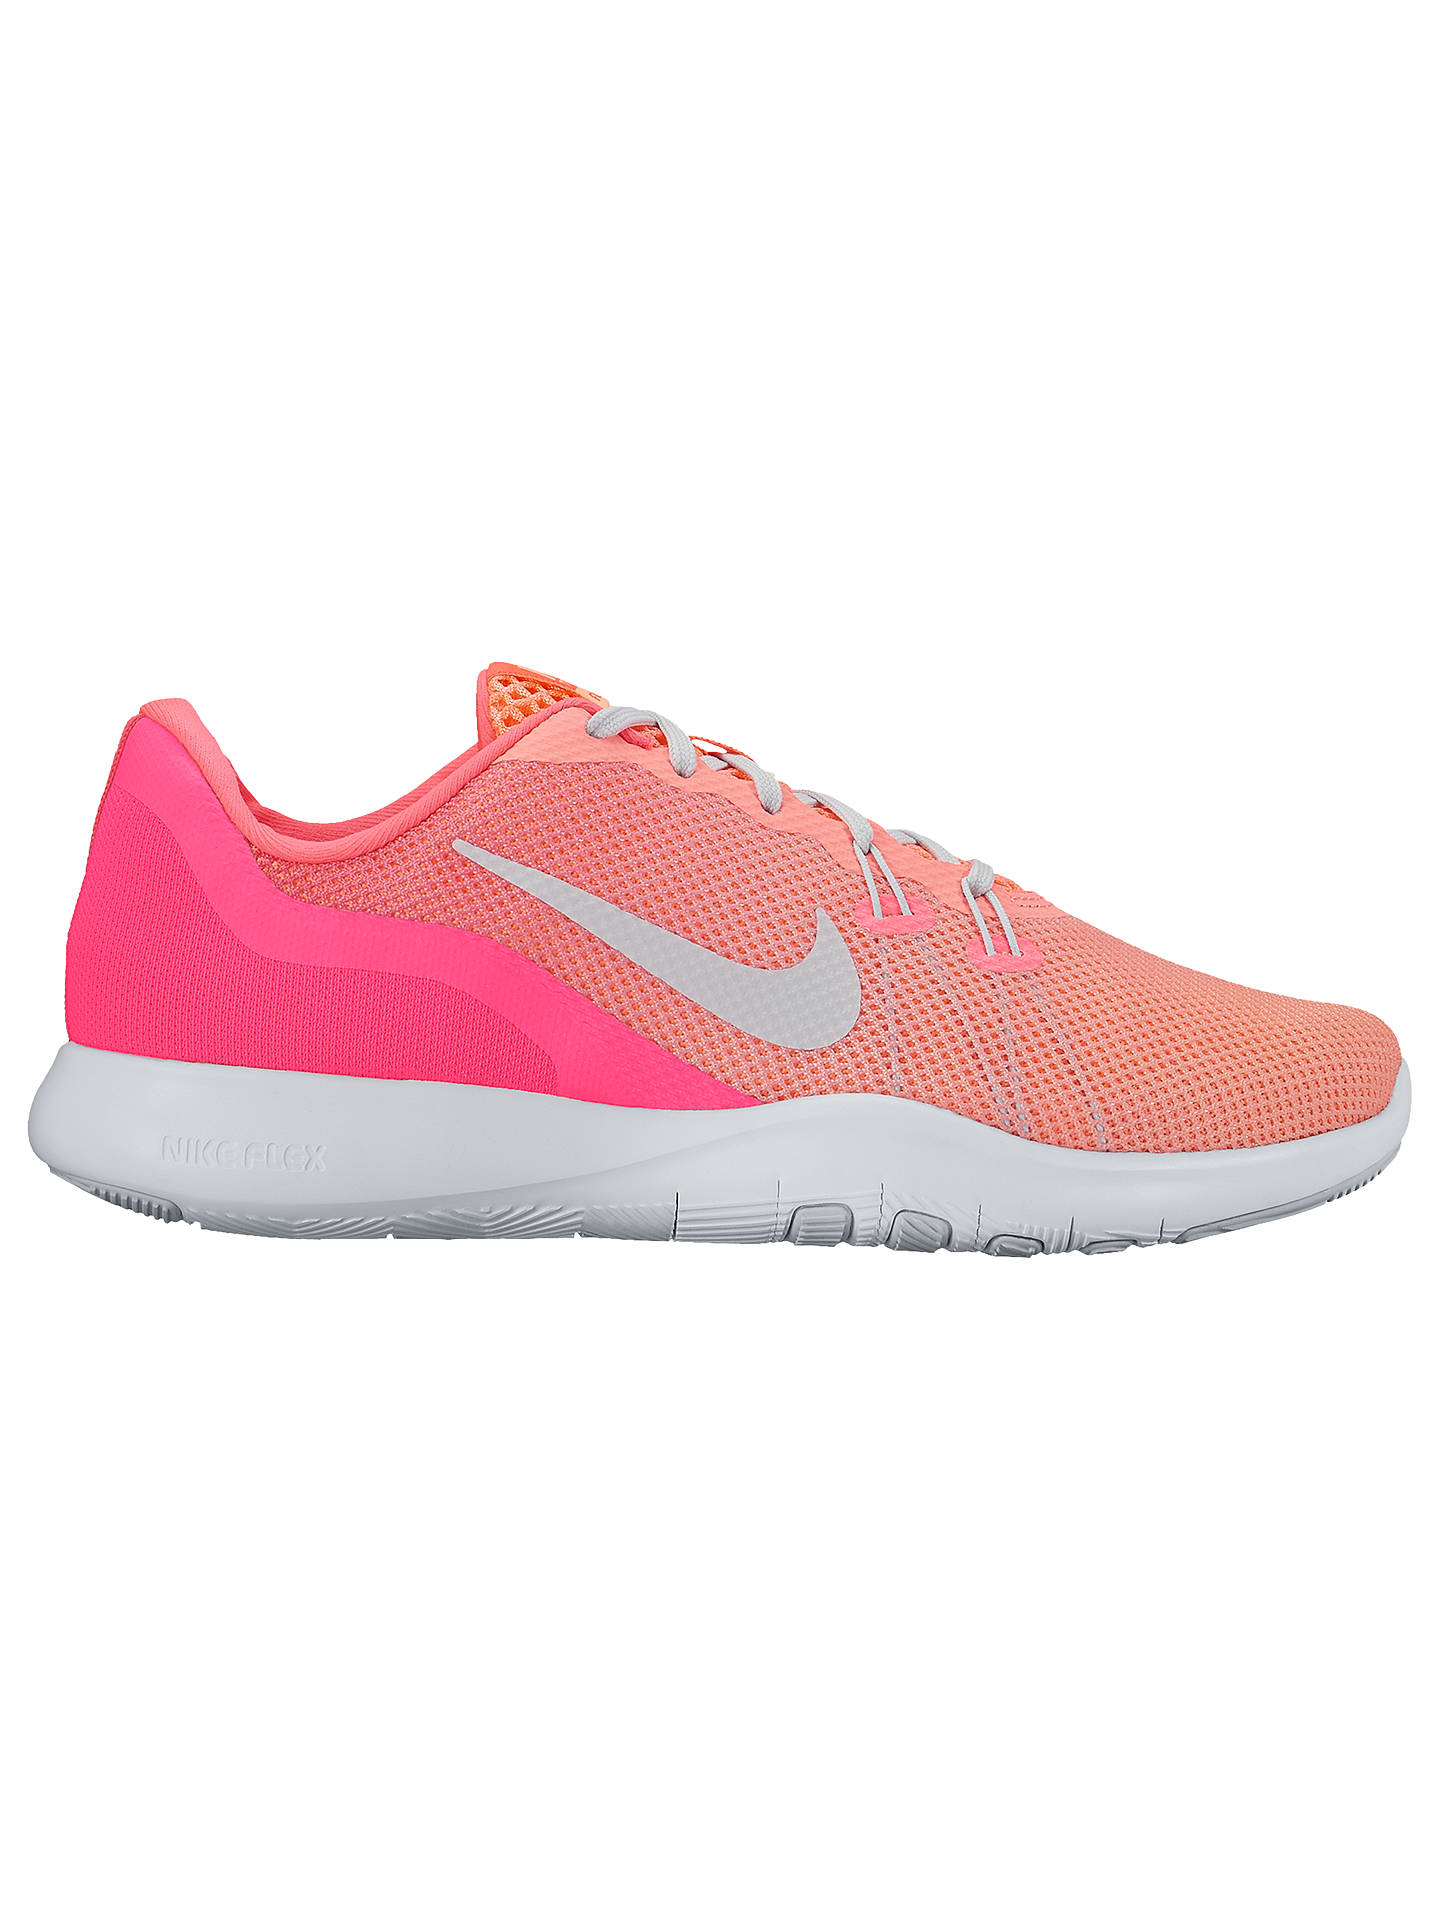 807dca61099e ... sale buynike flex trainer 7 fade womens cross trainers pink silver 4  online at e6208 658ed